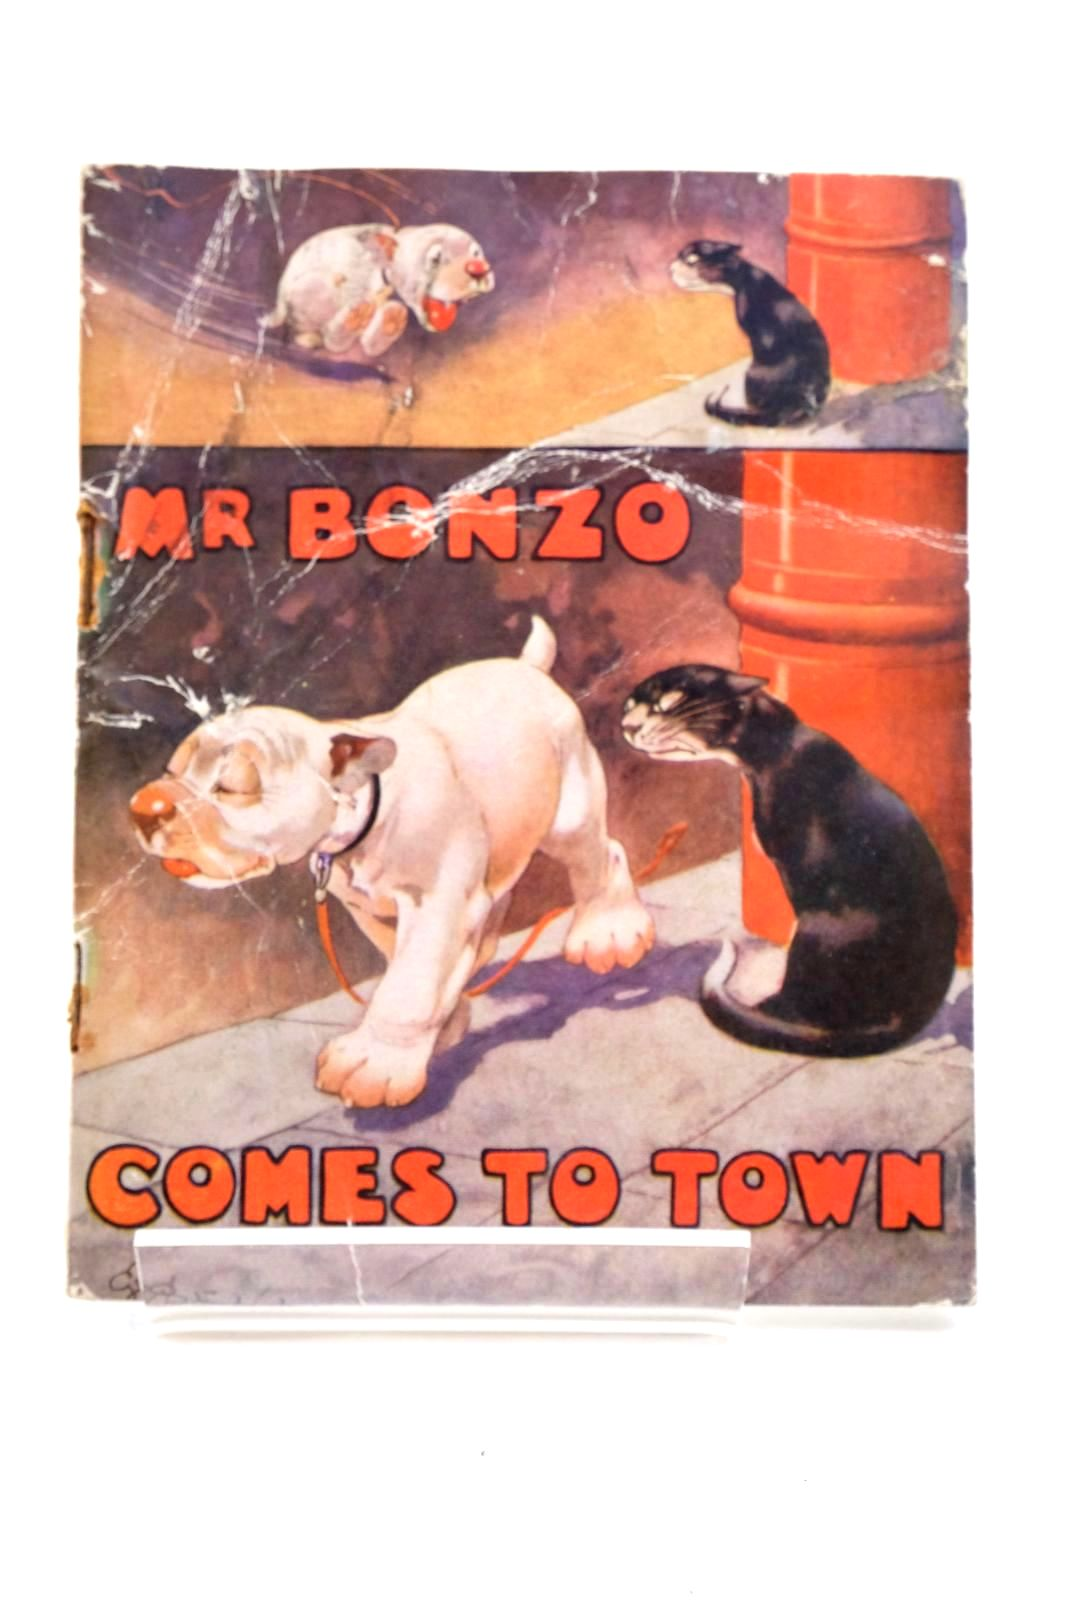 Photo of MR. BONZO COMES TO TOWN- Stock Number: 1321603